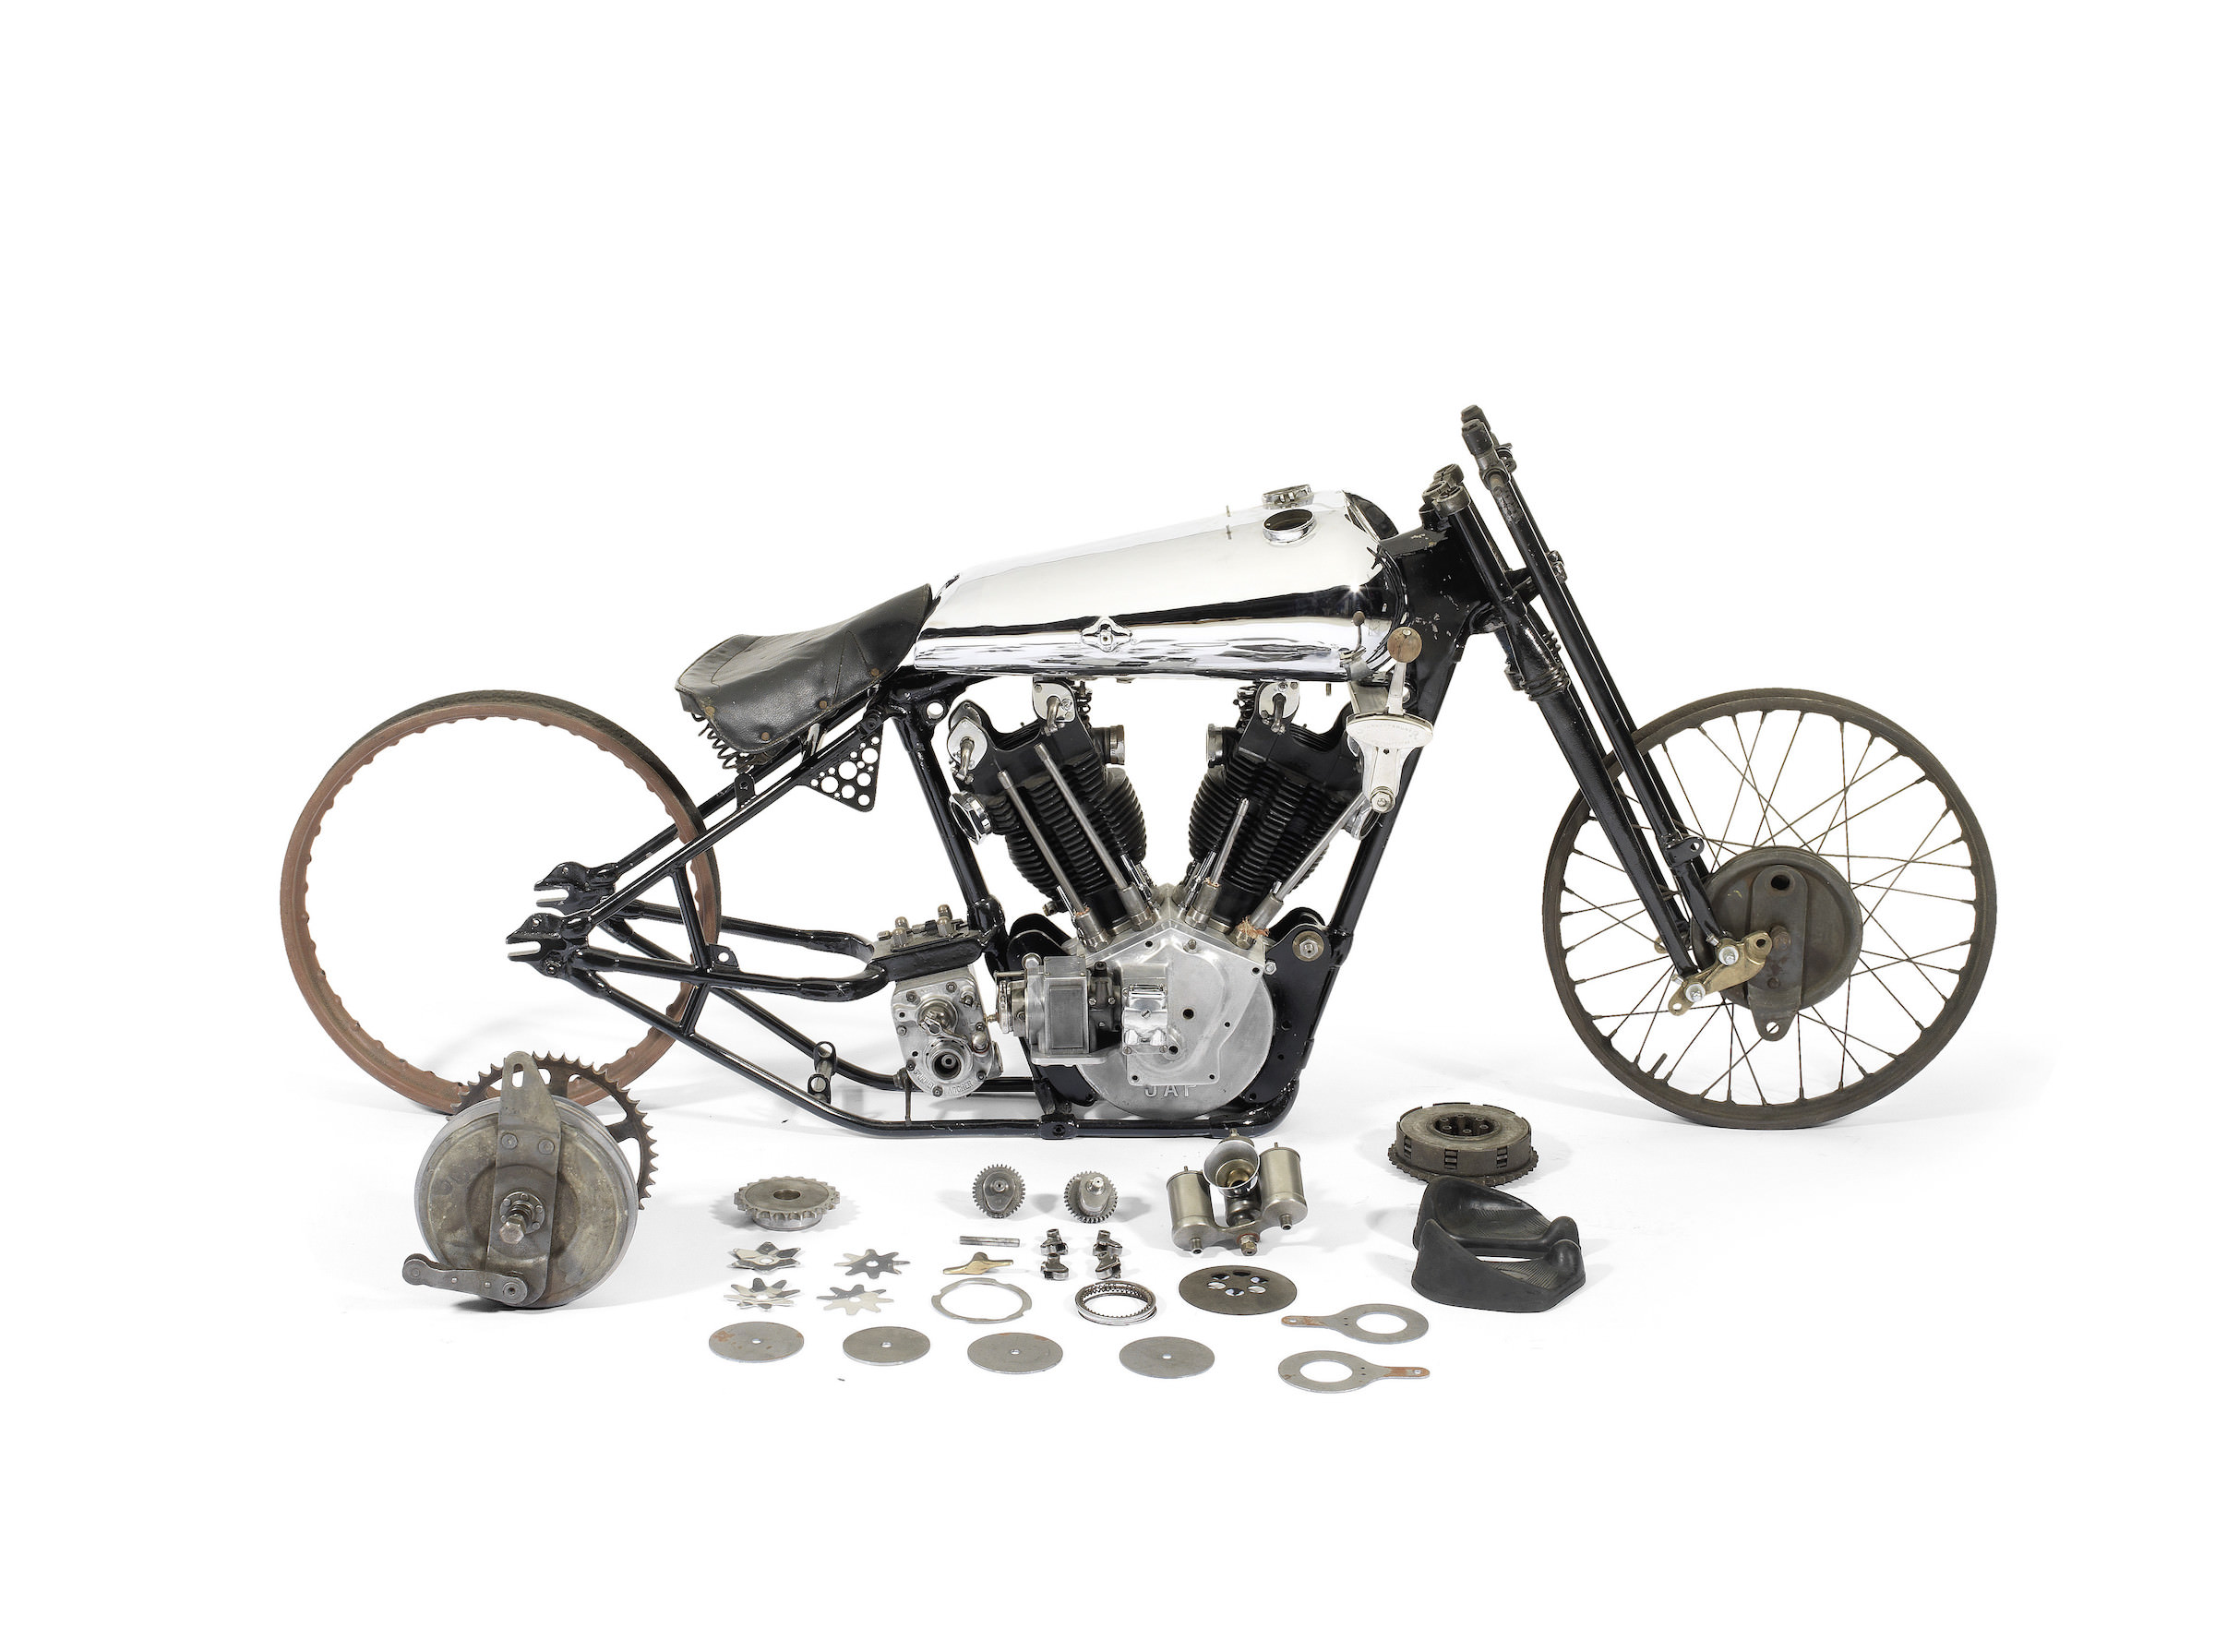 100 000 Project Bike Brough Superior Ss100 Pendine